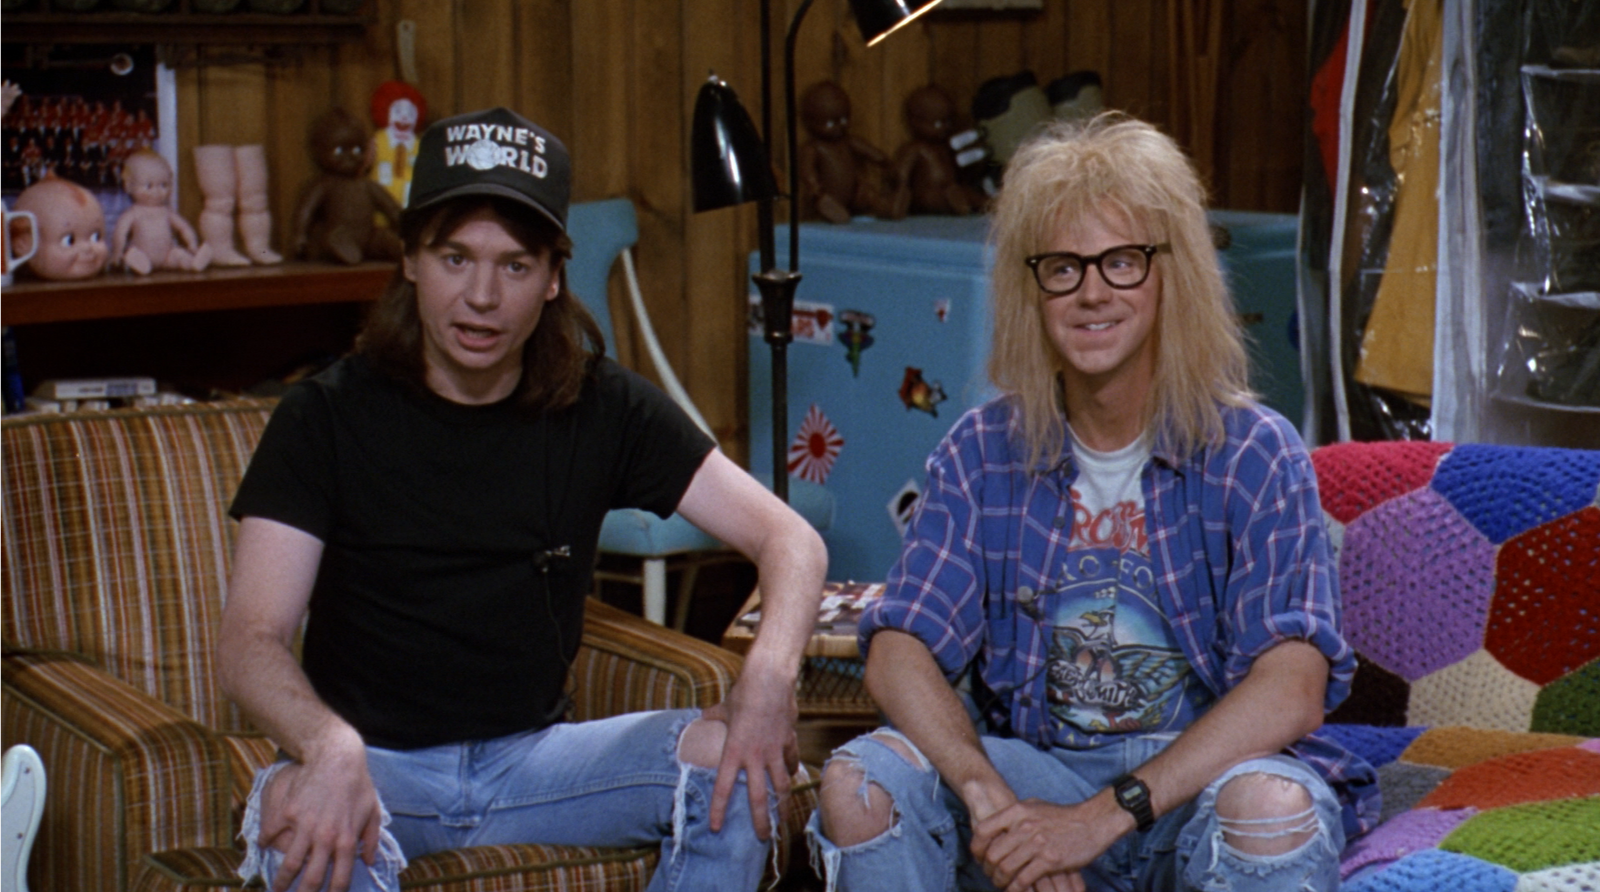 Image result for Wayne's World 1992